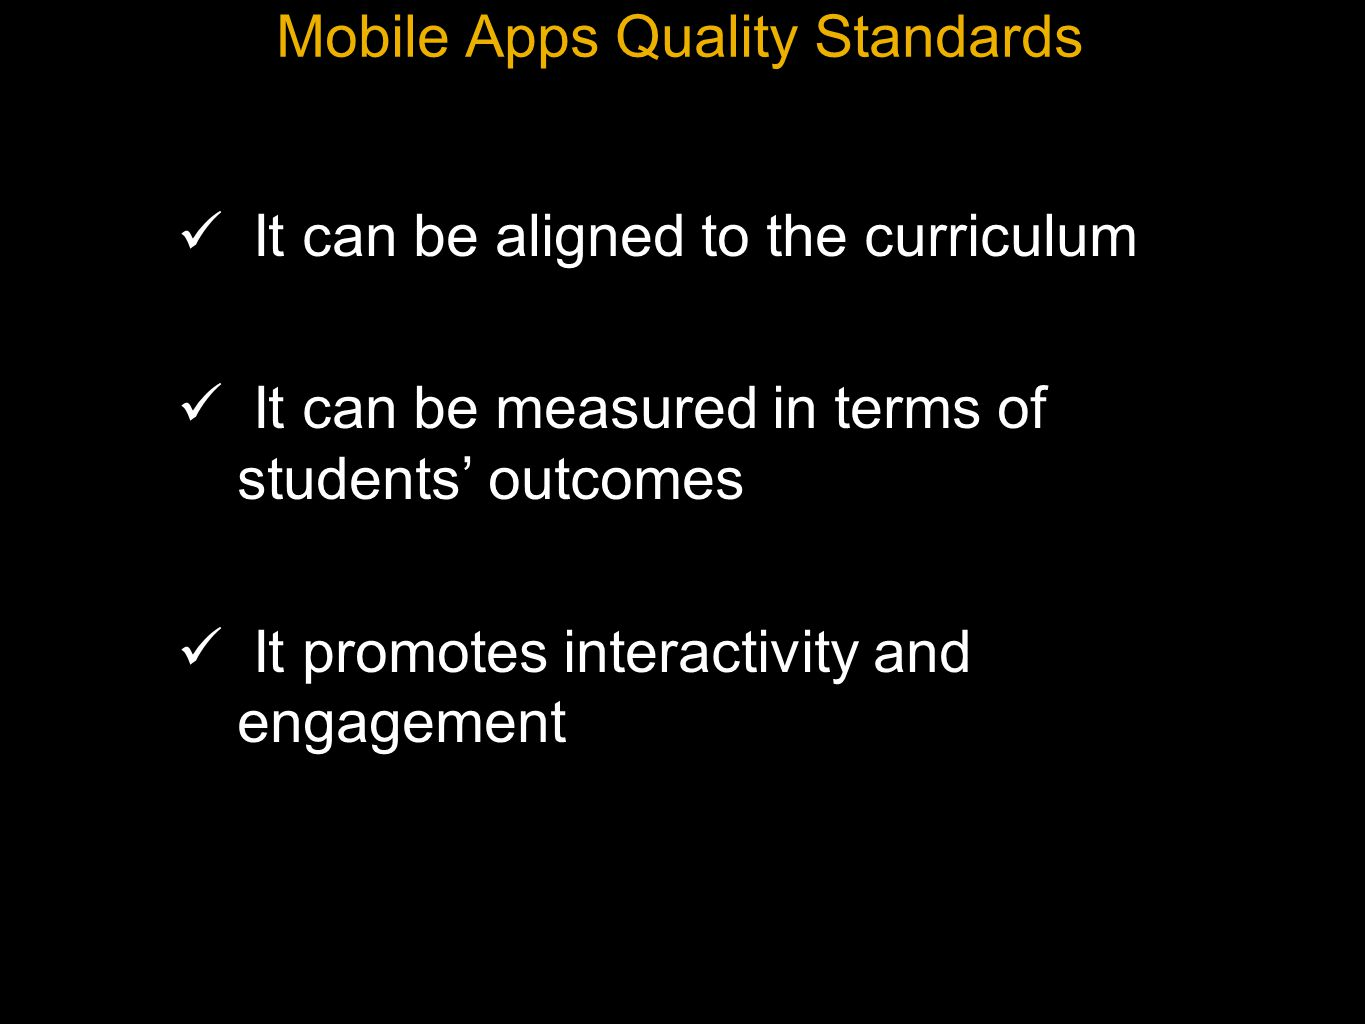 Mobile Apps Quality Standards It can be aligned to the curriculum It can be measured in terms of students outcomes It promotes interactivity and engagement